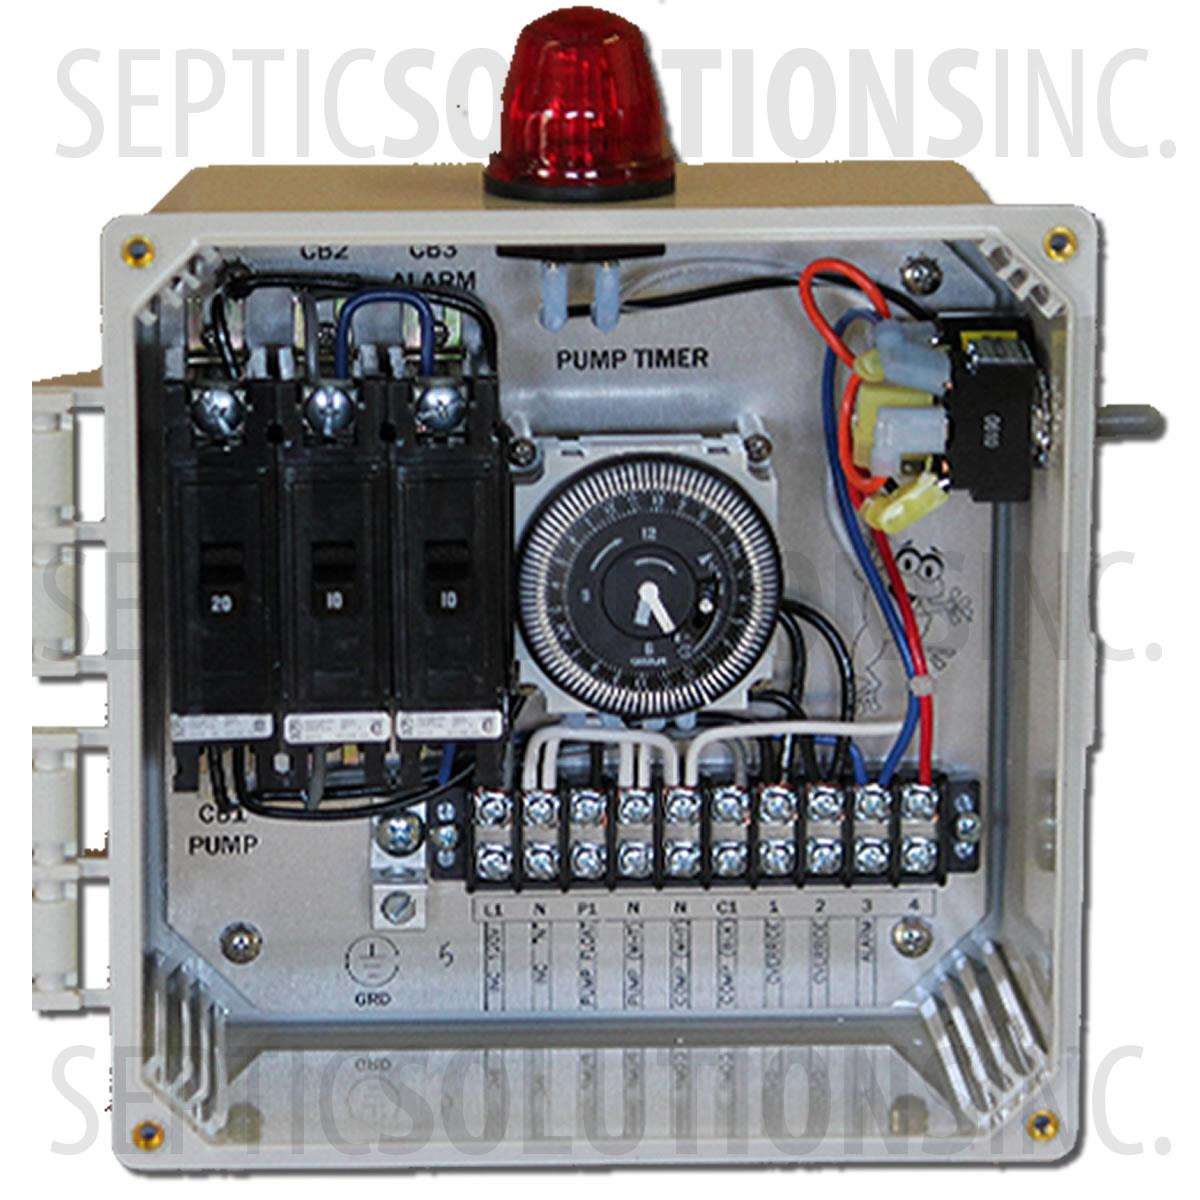 50B003_1?w=270 aerobic septic system control panels and alarms free shipping  at honlapkeszites.co